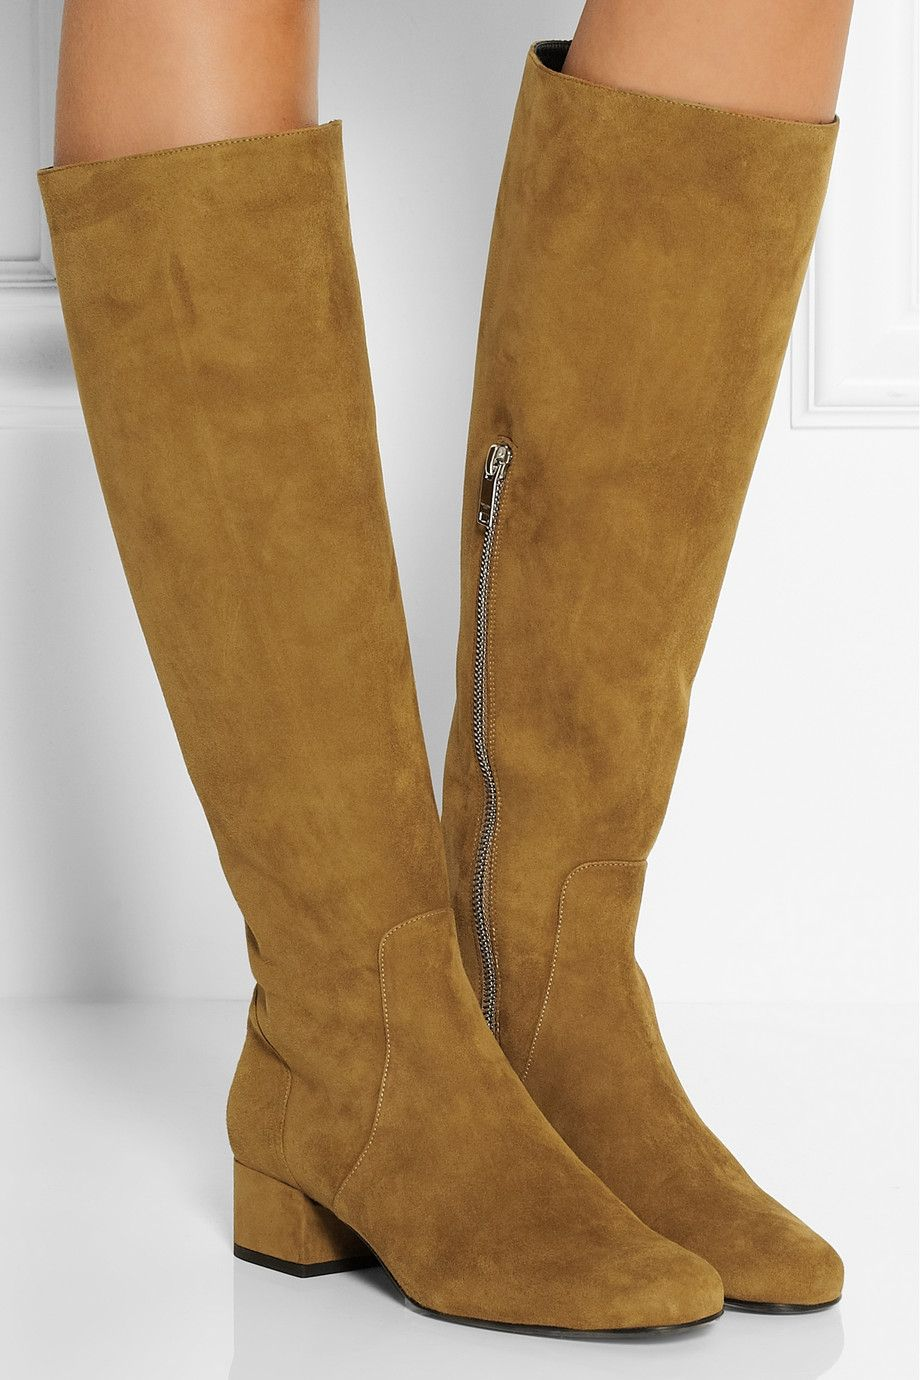 Saint Laurent Suede Knee-High Boots clearance 2014 newest best place for sale clearance clearance 5QJSFgf6h